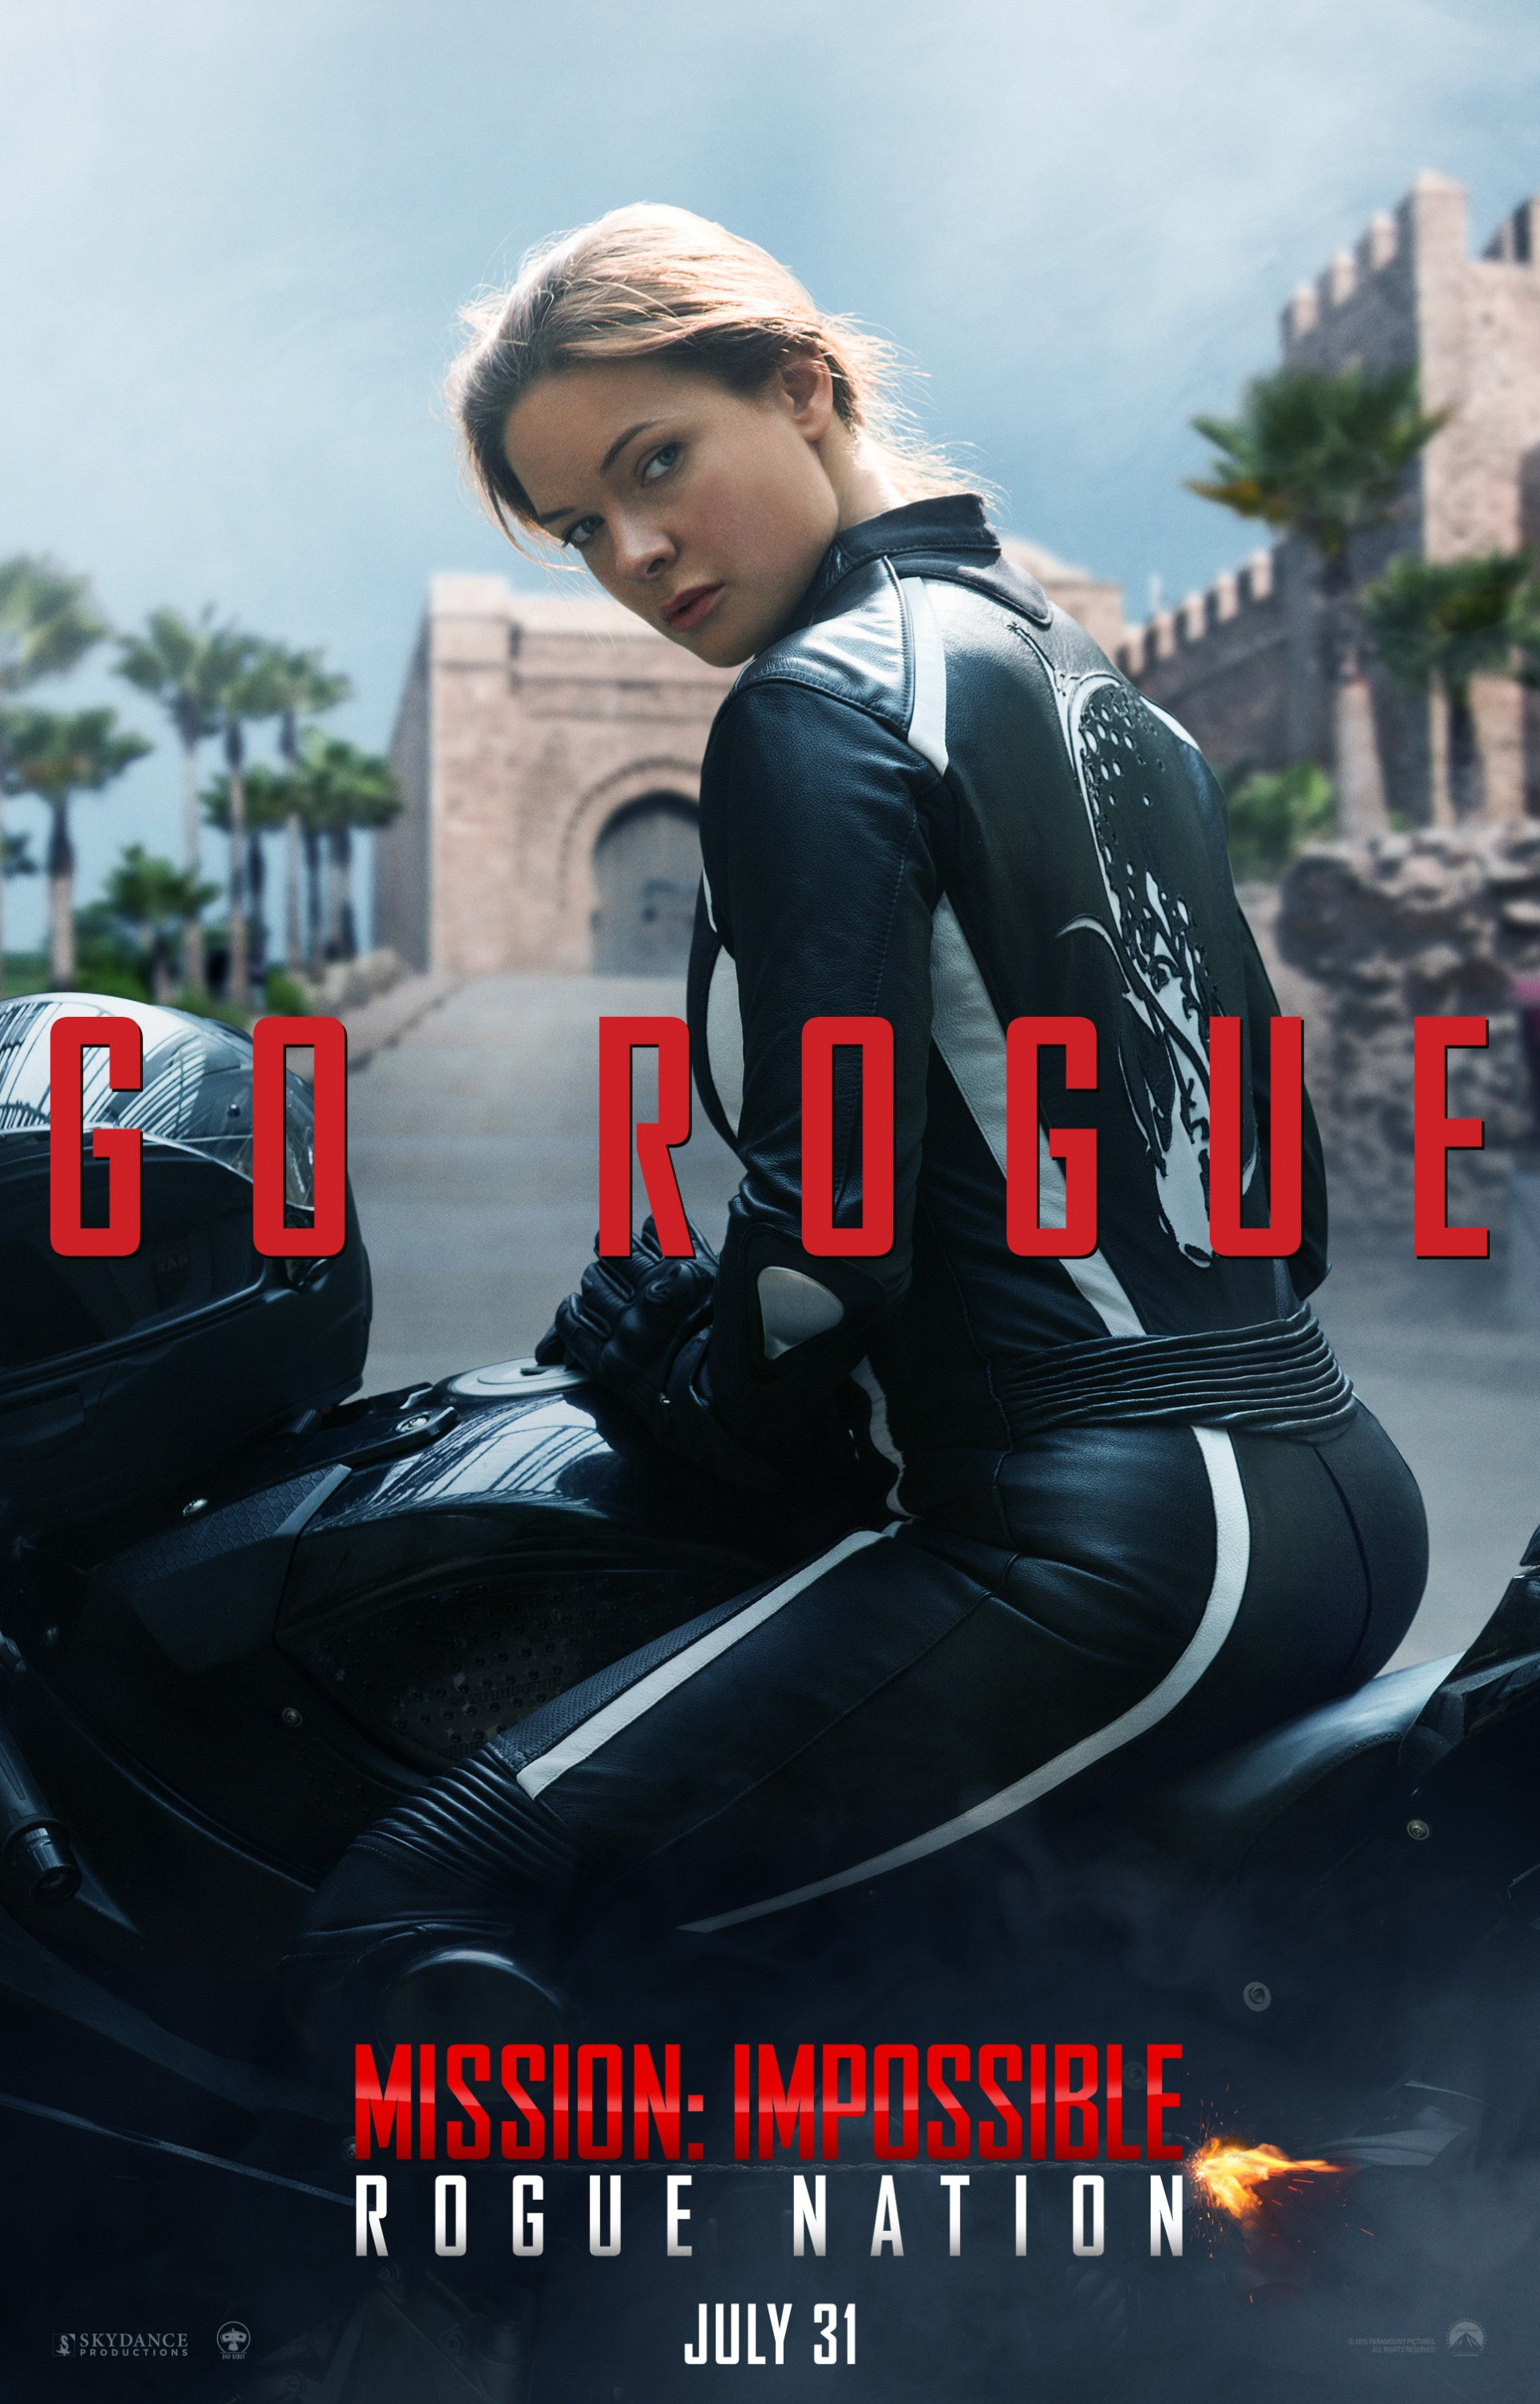 Mission Impossible Rogue Nation-Poster Char-04Junho2015-04